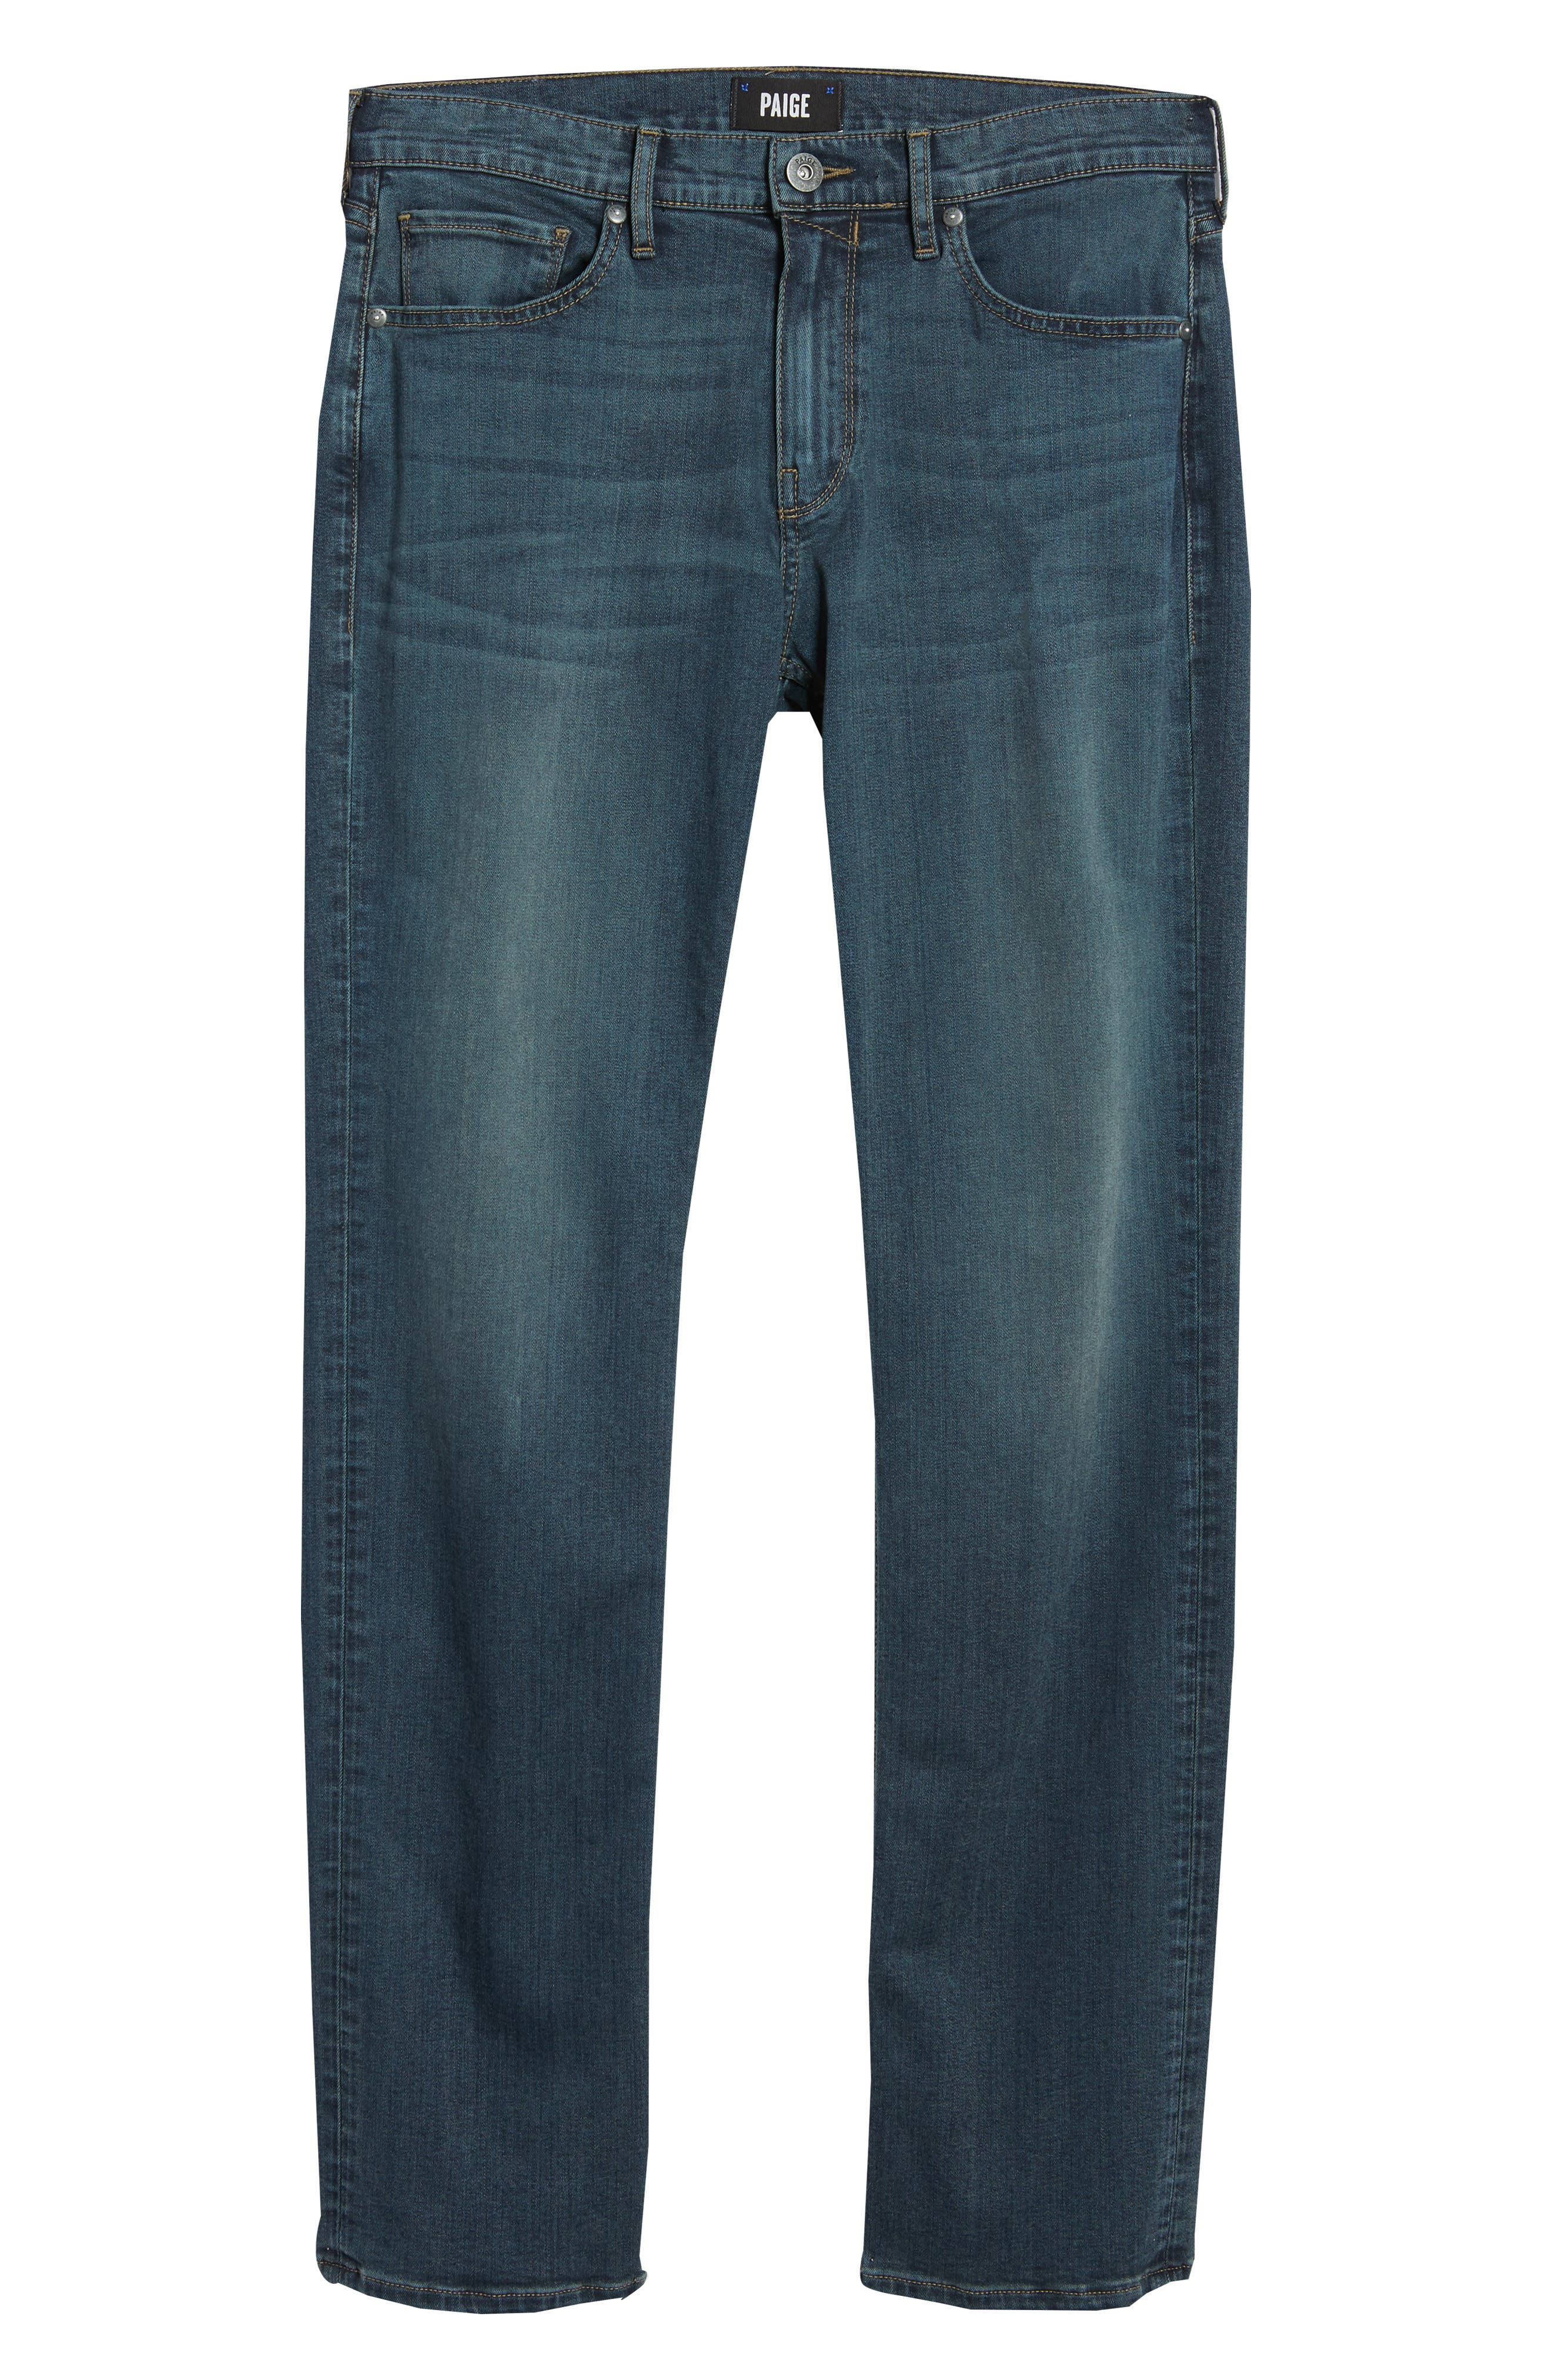 Byron Slim Straight Fit Jeans,                             Alternate thumbnail 6, color,                             Cruise